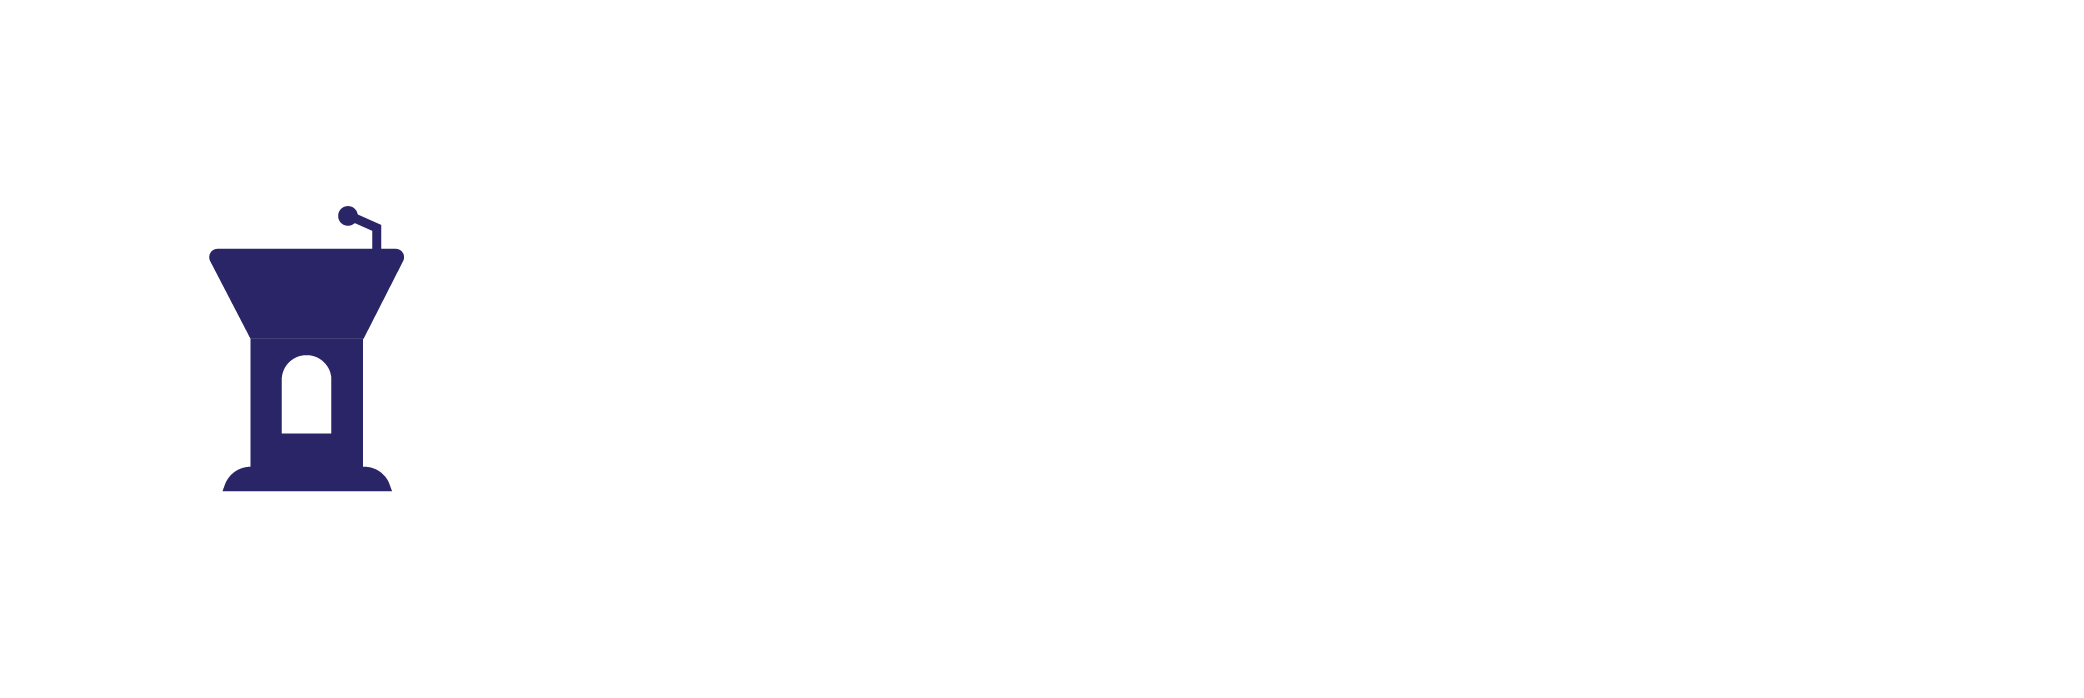 An image of a podium with a small microphone showing the service of leading seminars that GLDev offers.